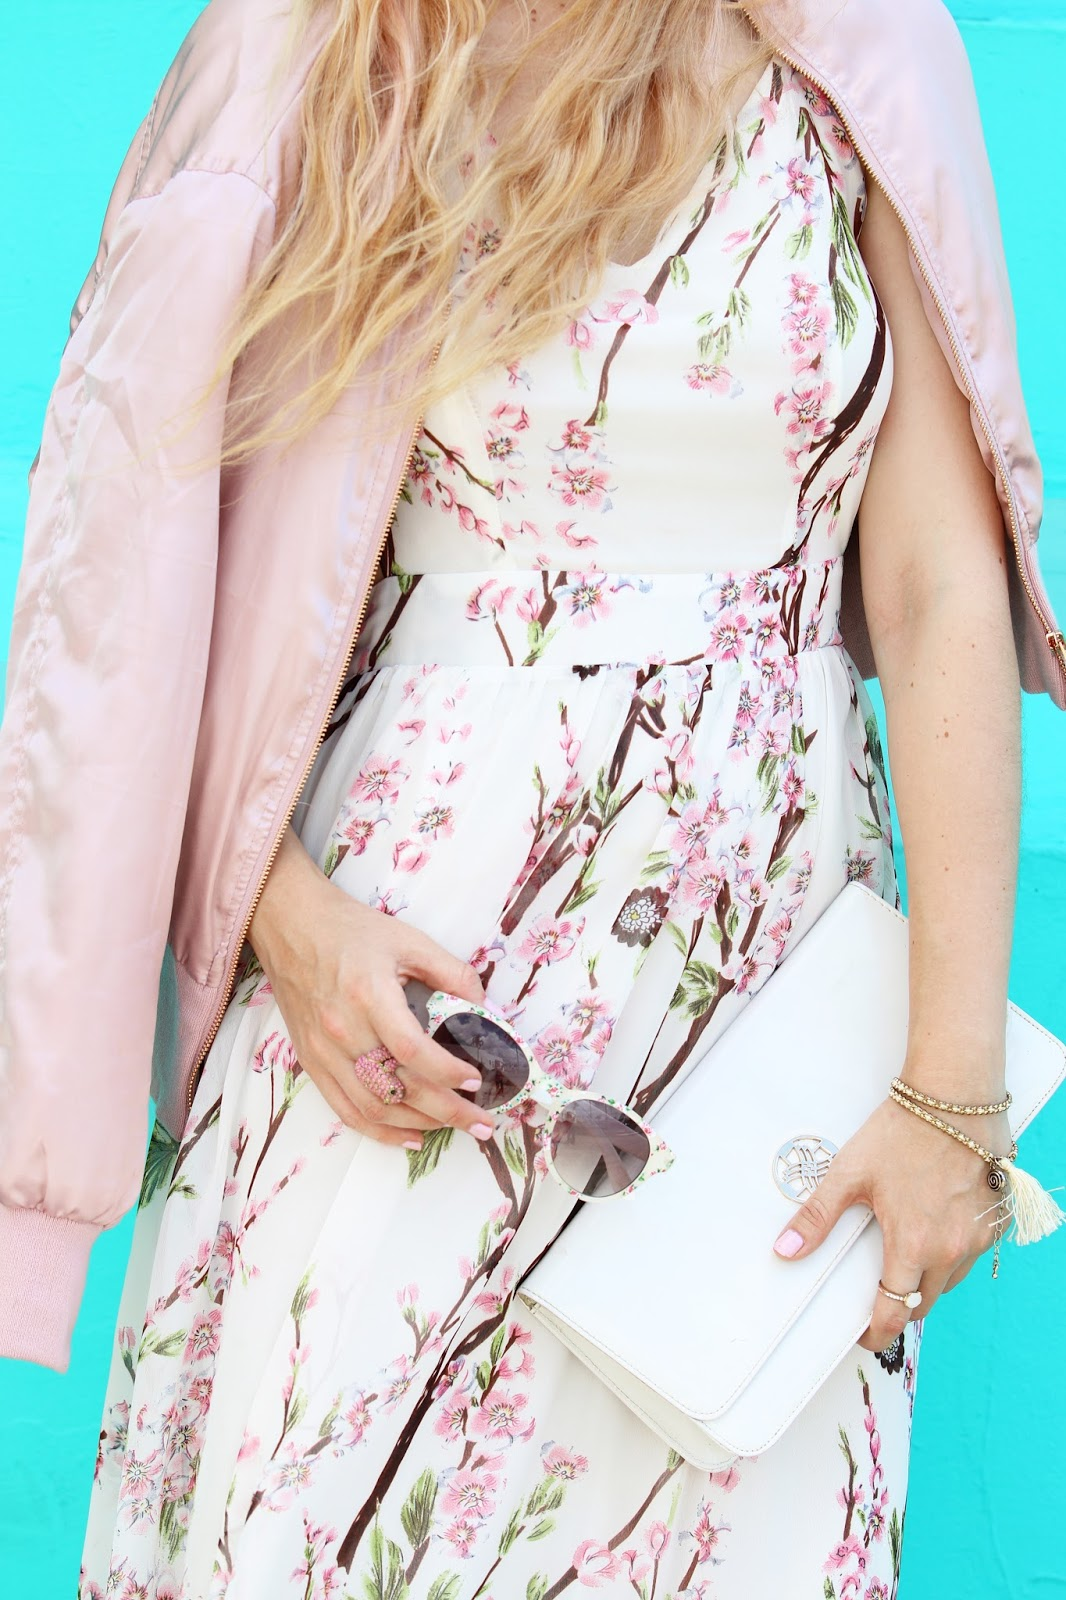 Pretty floral outfit for Spring